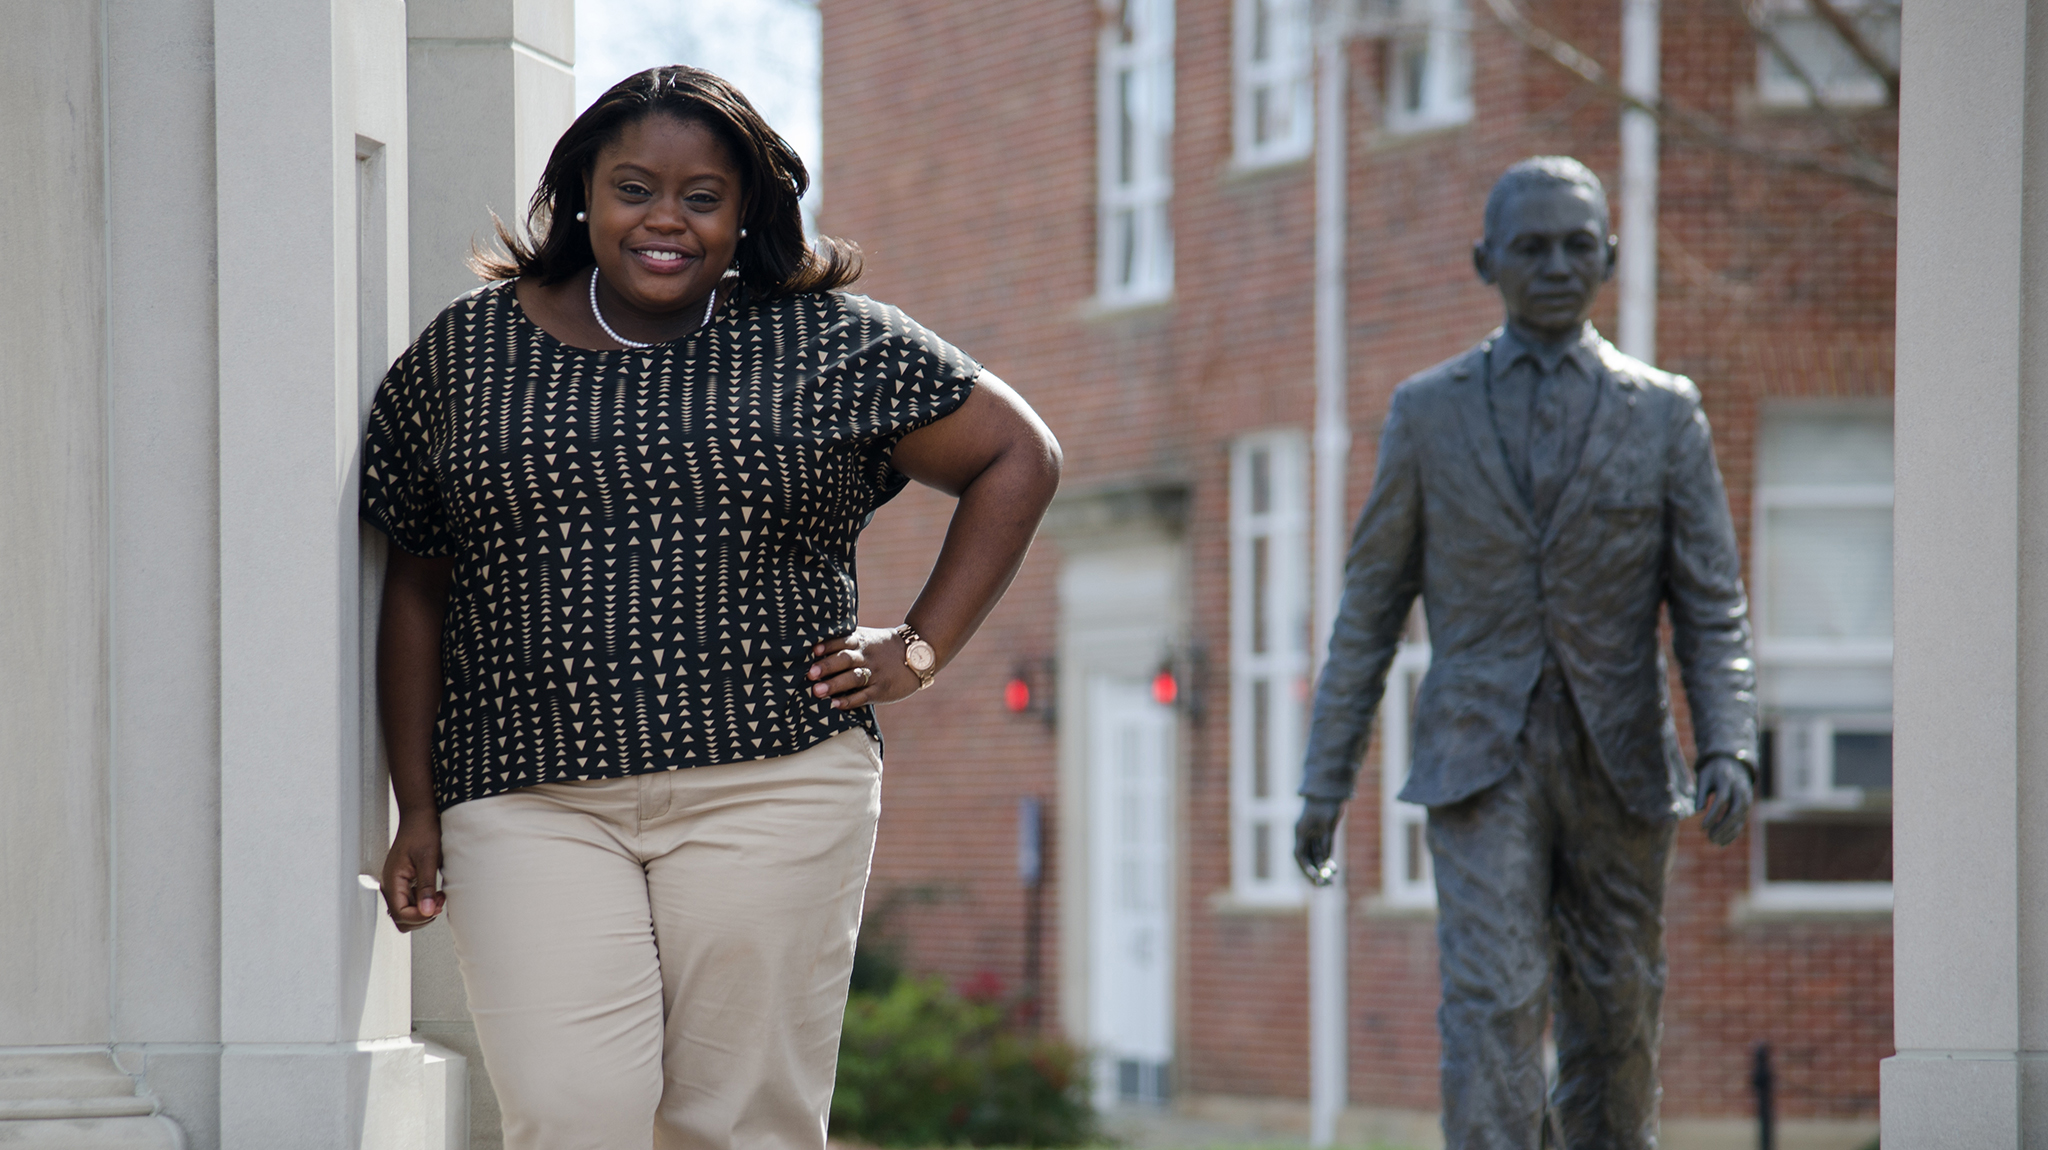 Fsu Law School >> Courtney Pearson First African-American to be Elected Homecoming Queen at UM - Ole Miss News